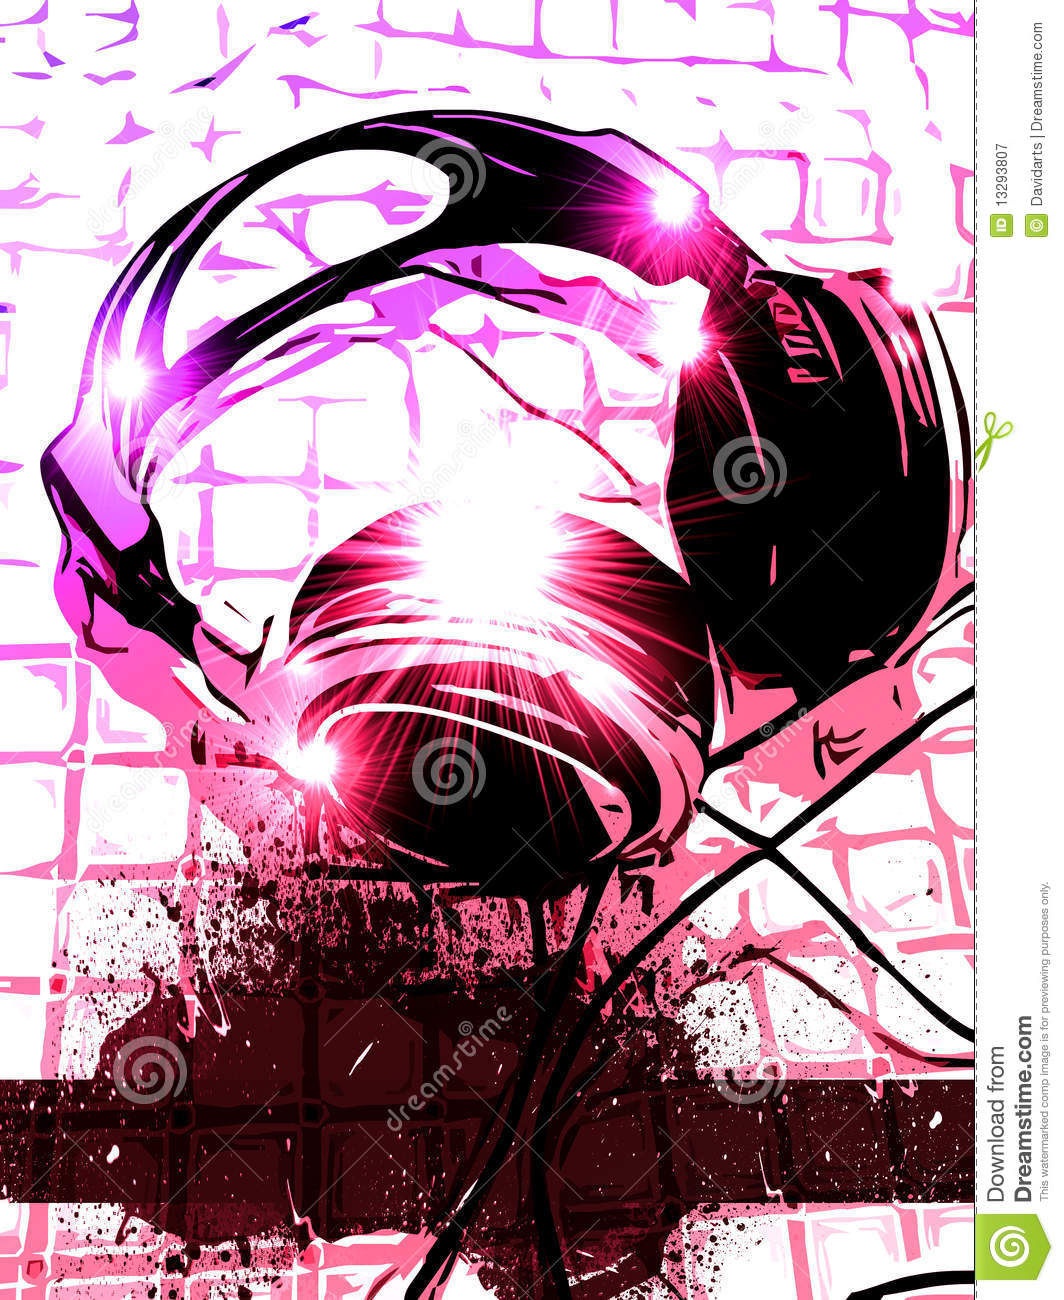 Artistic Dj Handset Music Background Stock Illustration Image 13293807